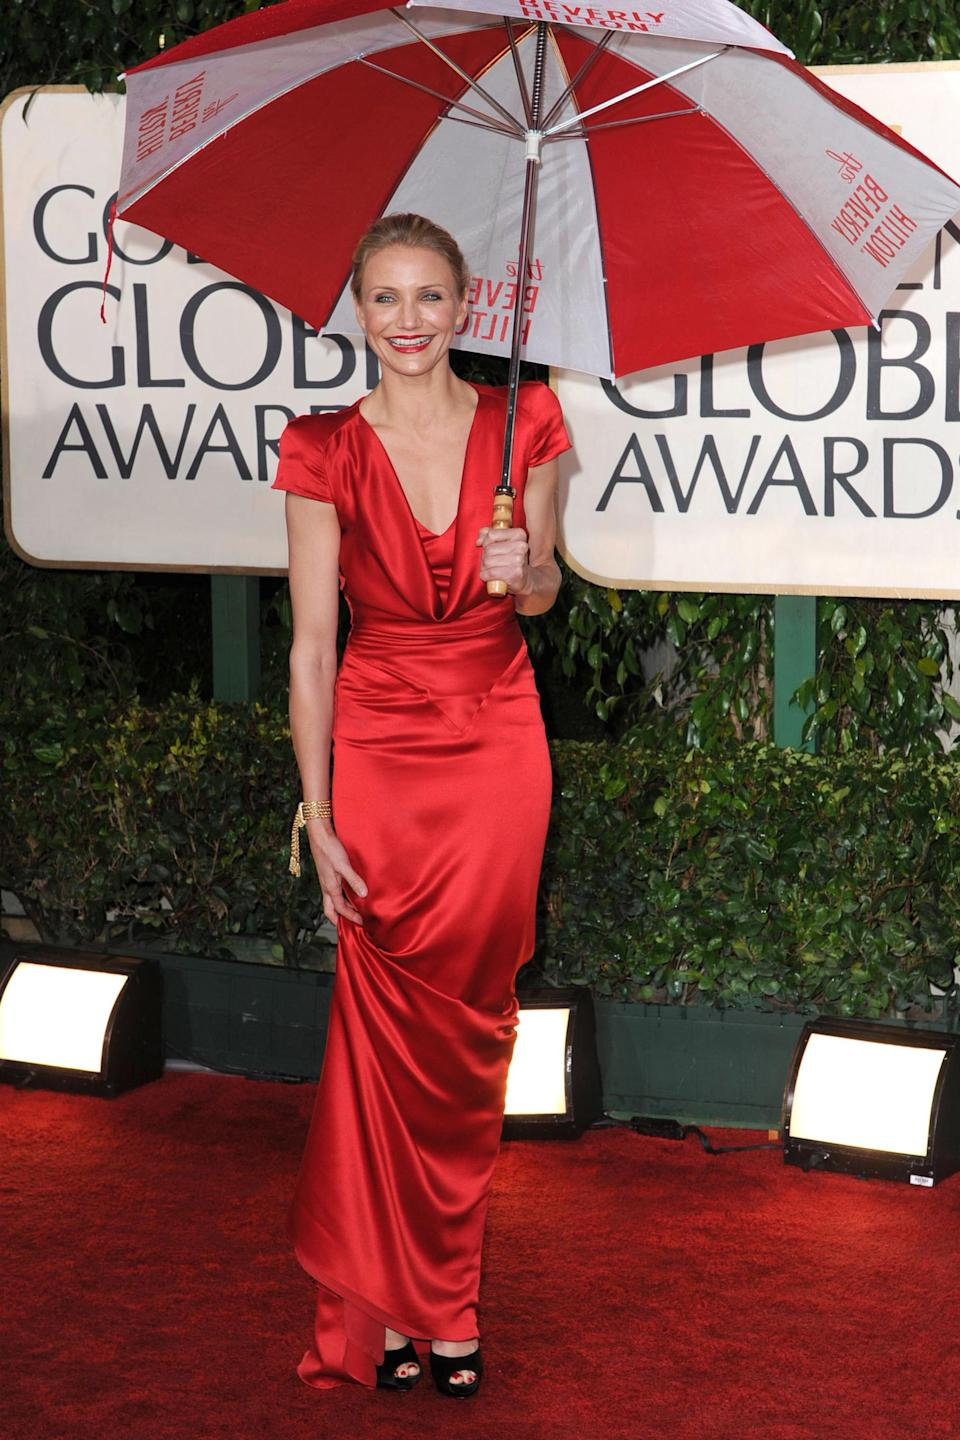 """<strong><h2>2010</h2></strong><br>A few showers couldn't stop Cameron Diaz (and that dazzling smile) from showing up her competition in this drapey Alexander McQueen gown.<br><br><em>Cameron Diaz in Alexander McQueen.</em><span class=""""copyright"""">Photo: SGranitz/WireImage.</span>"""